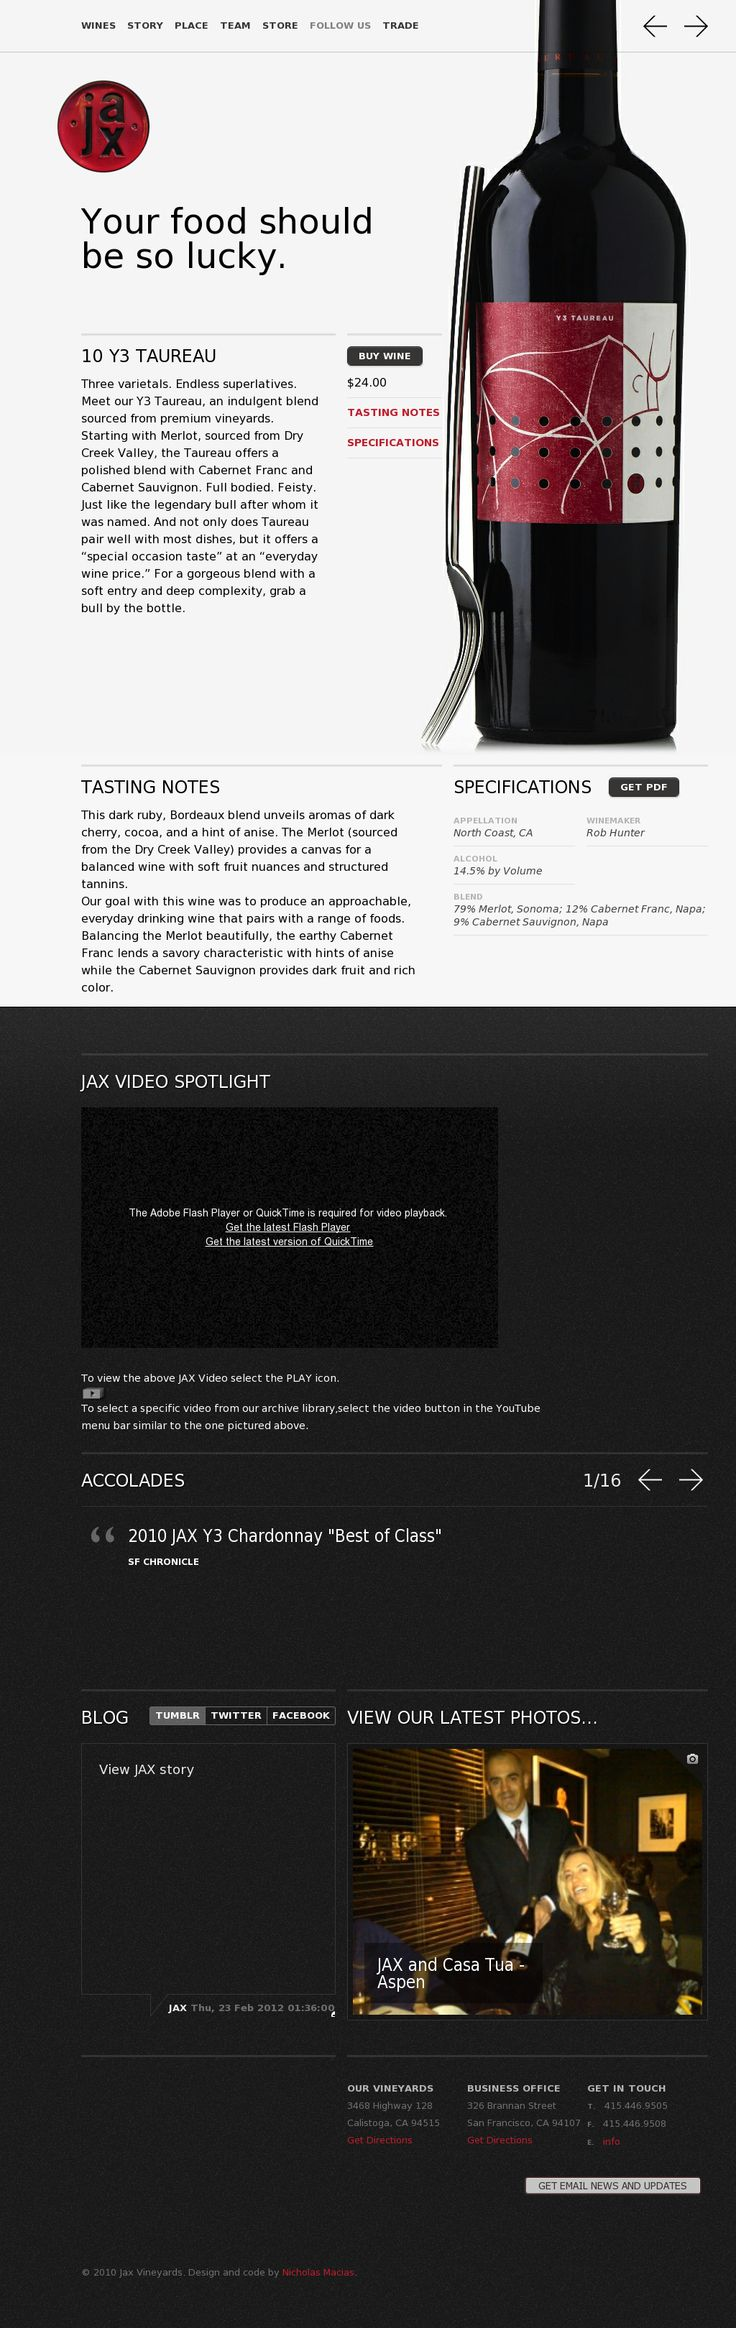 The focus of this website is clearly on the wine bottles because they are so large compared to the text content. The photographs are crisp and blend in with the environment because they have a white background. I like how the menu is fixed to the top, making it easy to find. The content is split, as shown by the black - white backgrounds, which helps break up the page and keep it clean.